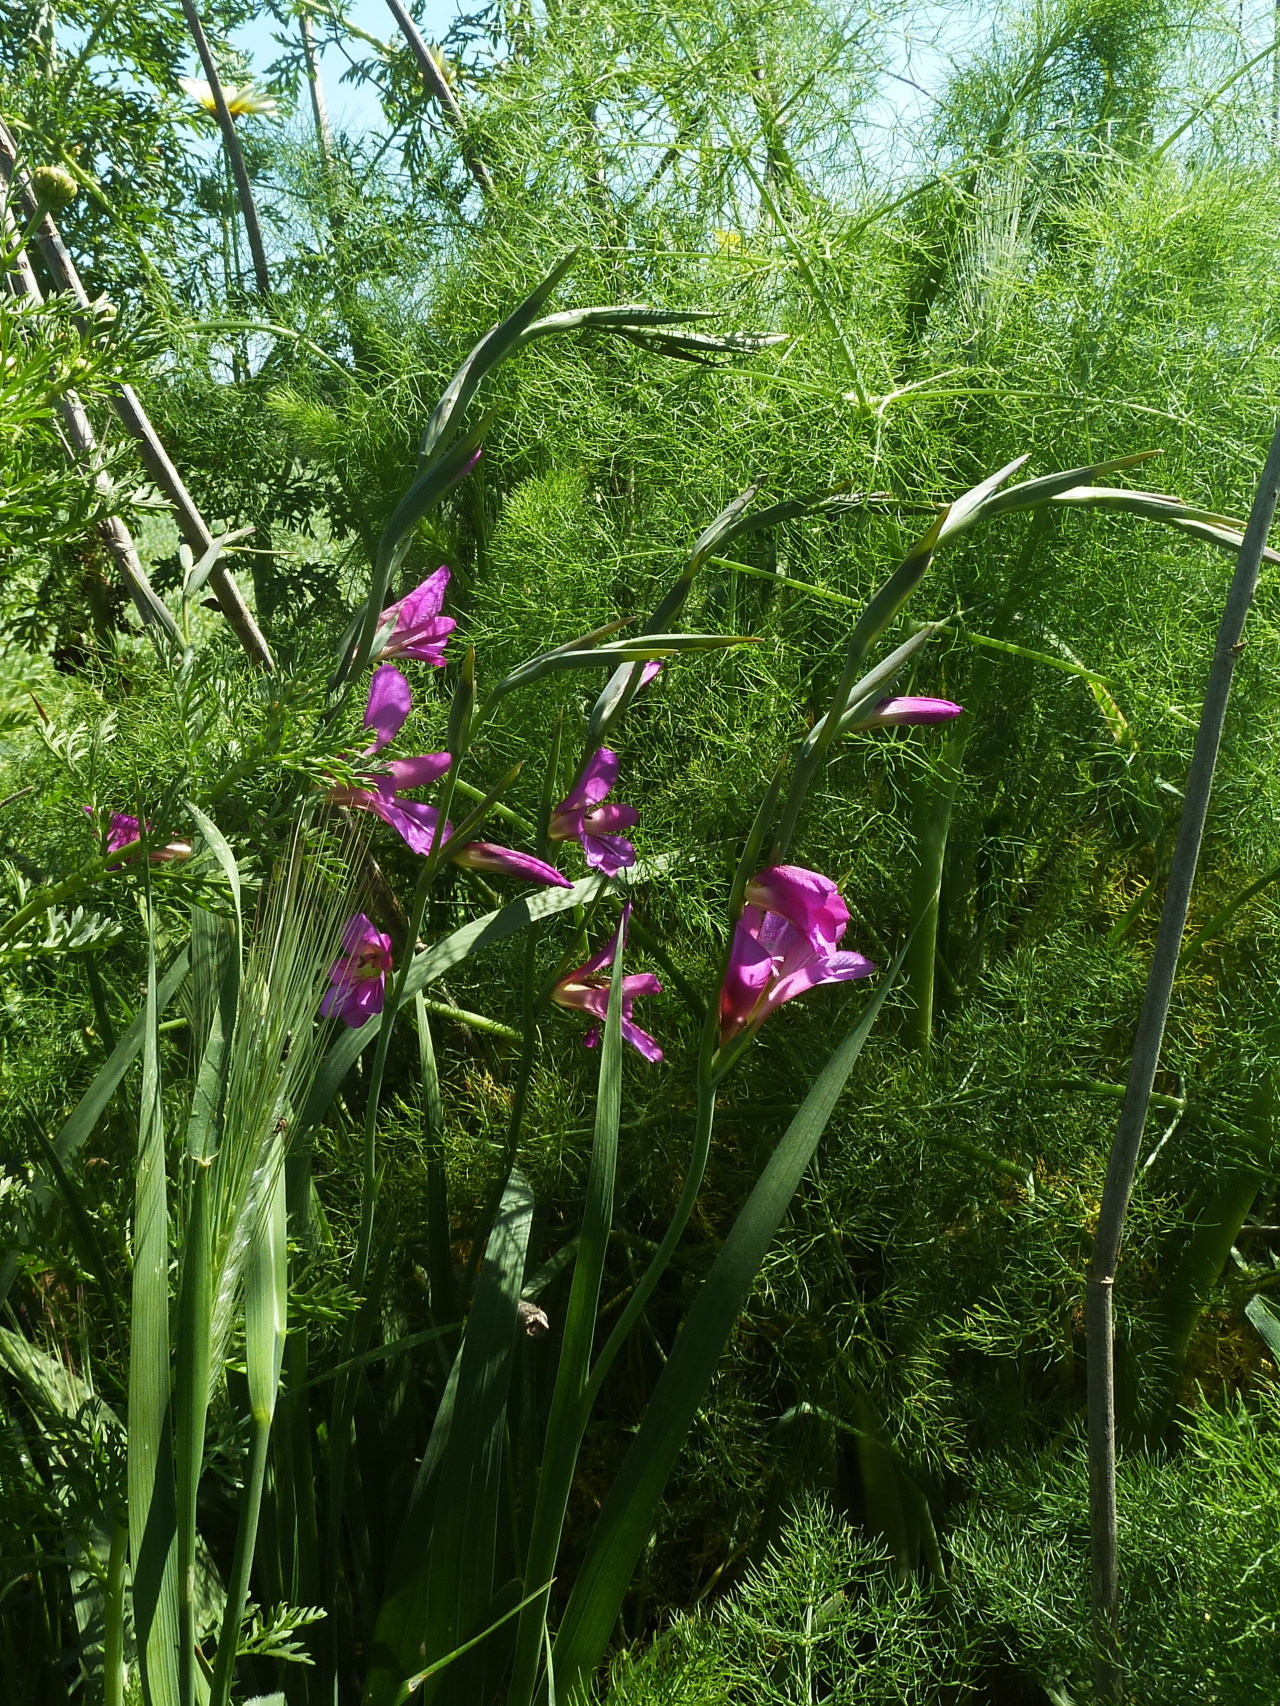 Wild Gladiolus and in the background wild fennel … Spring in Southern Italy :)